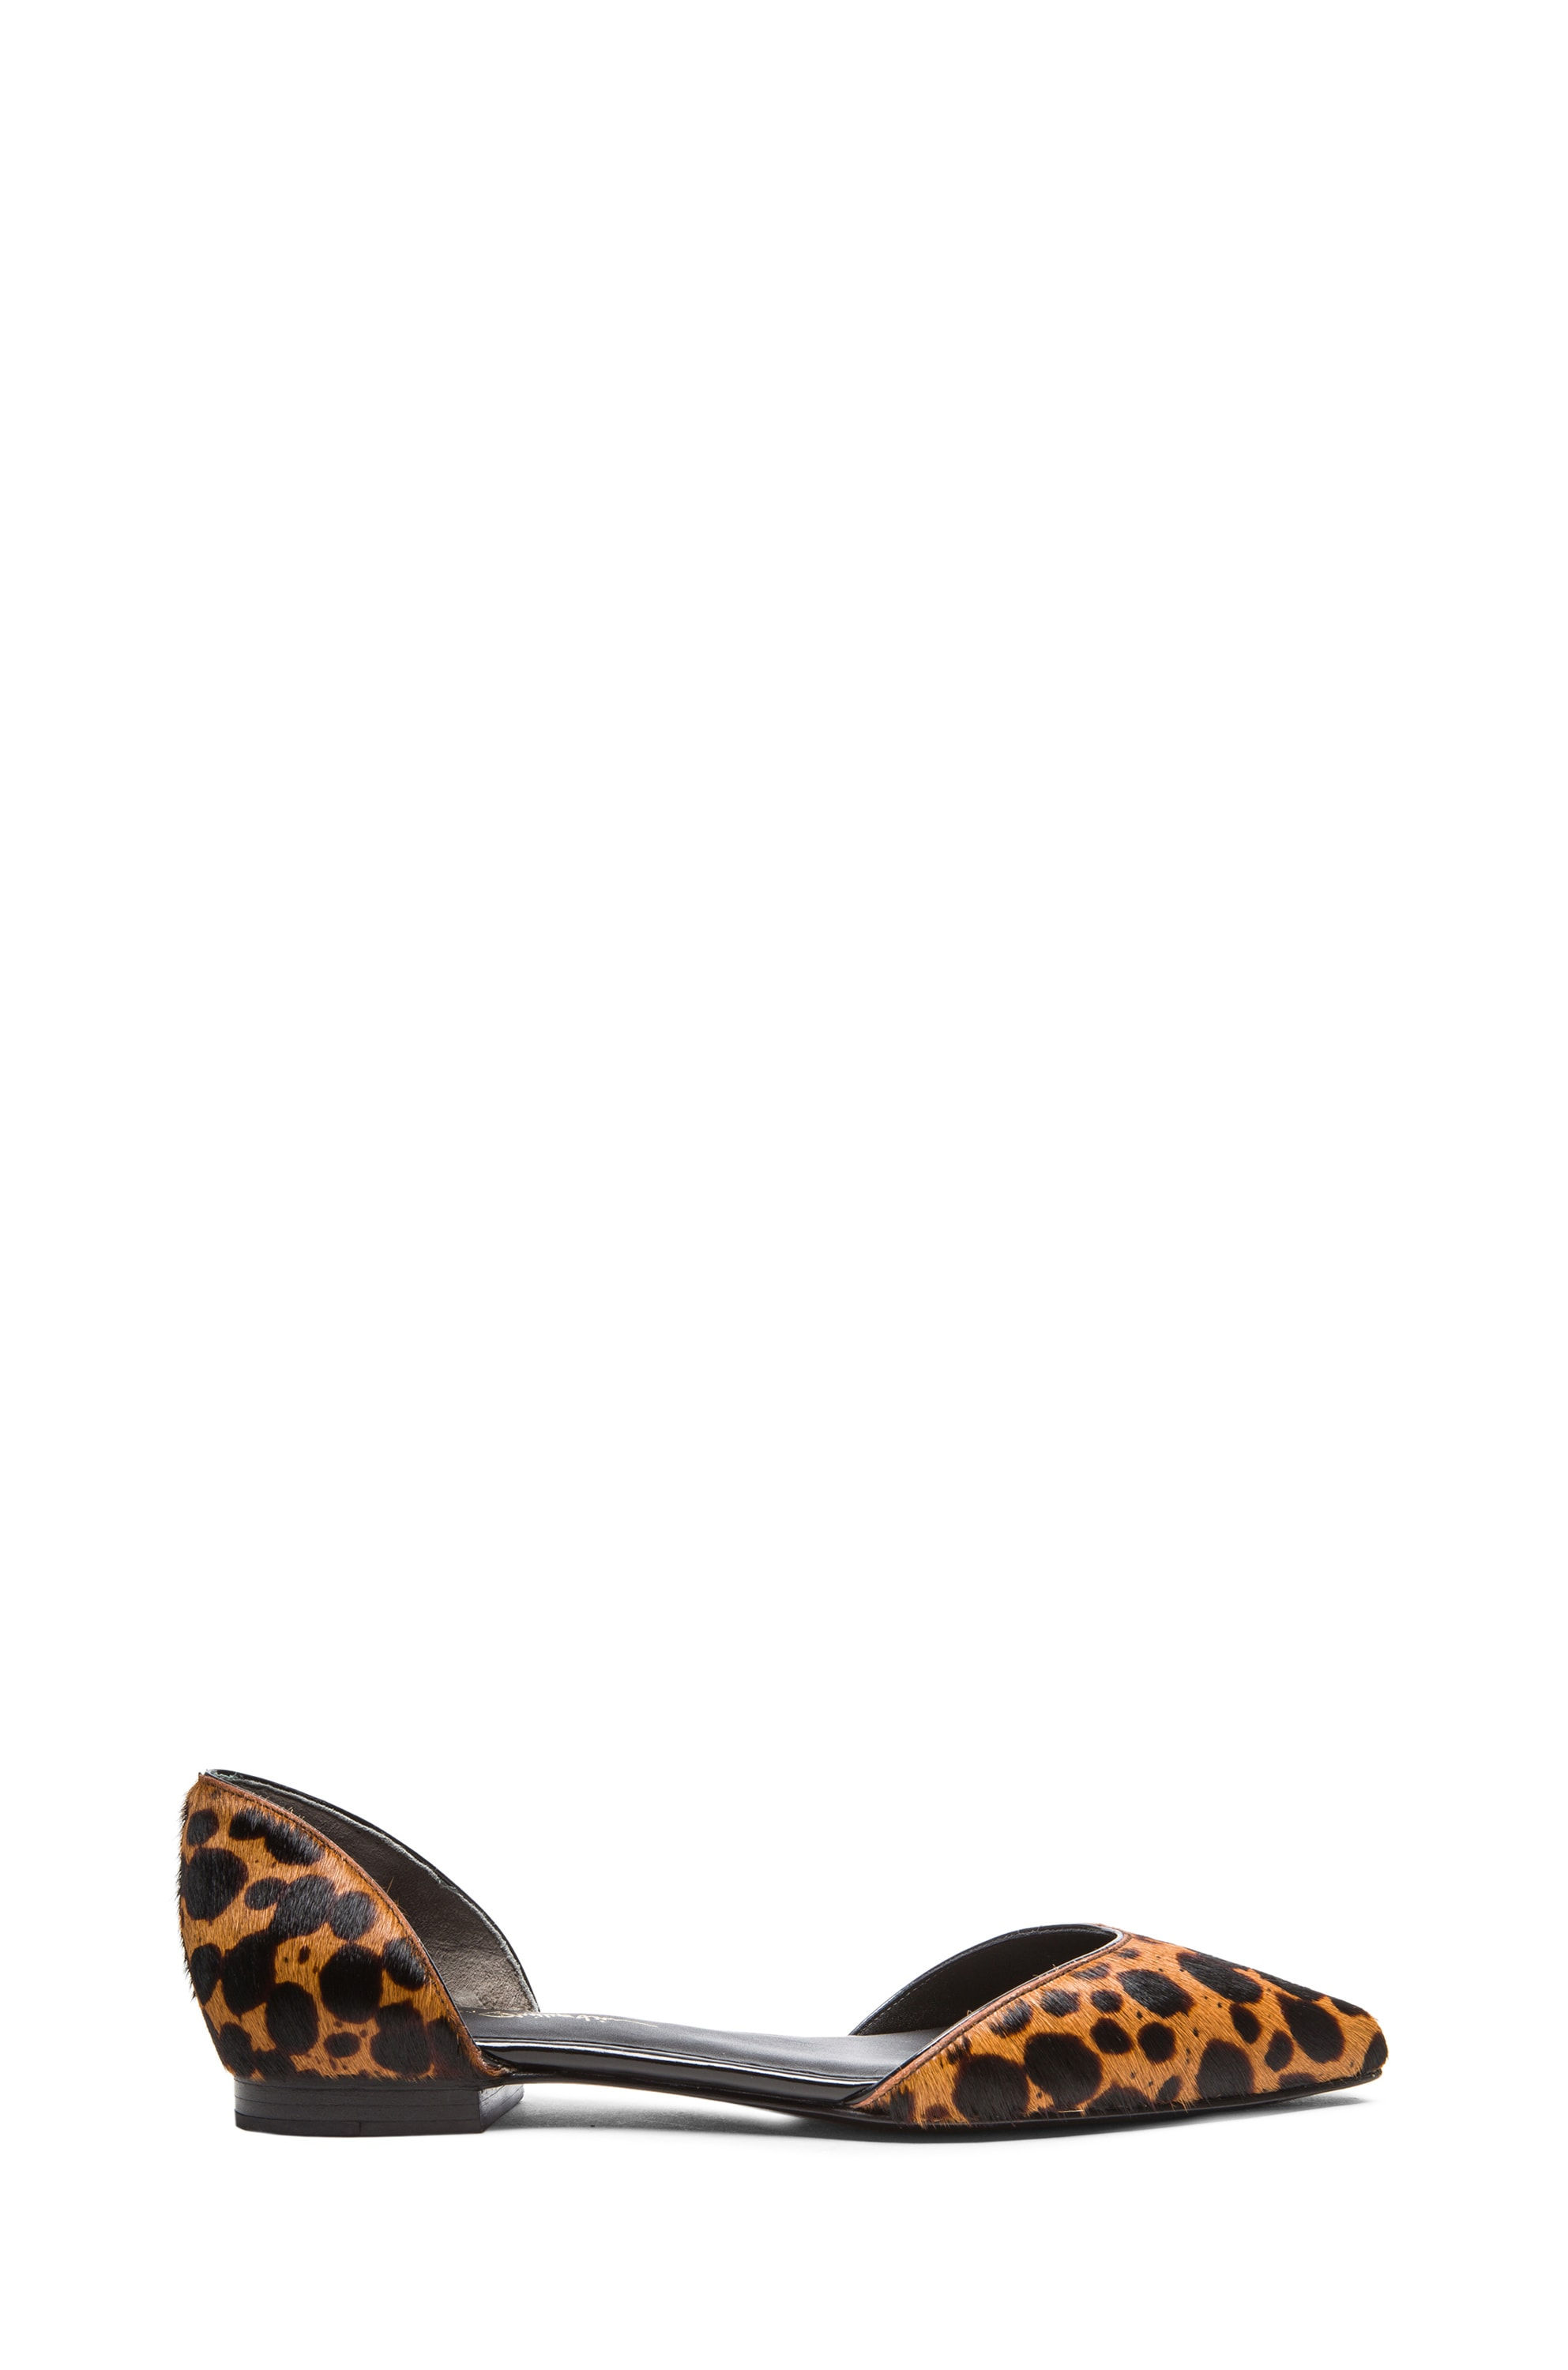 Image 1 of 3.1 phillip lim Devon D'Orsay Calf Hair Flats in Tan Multi